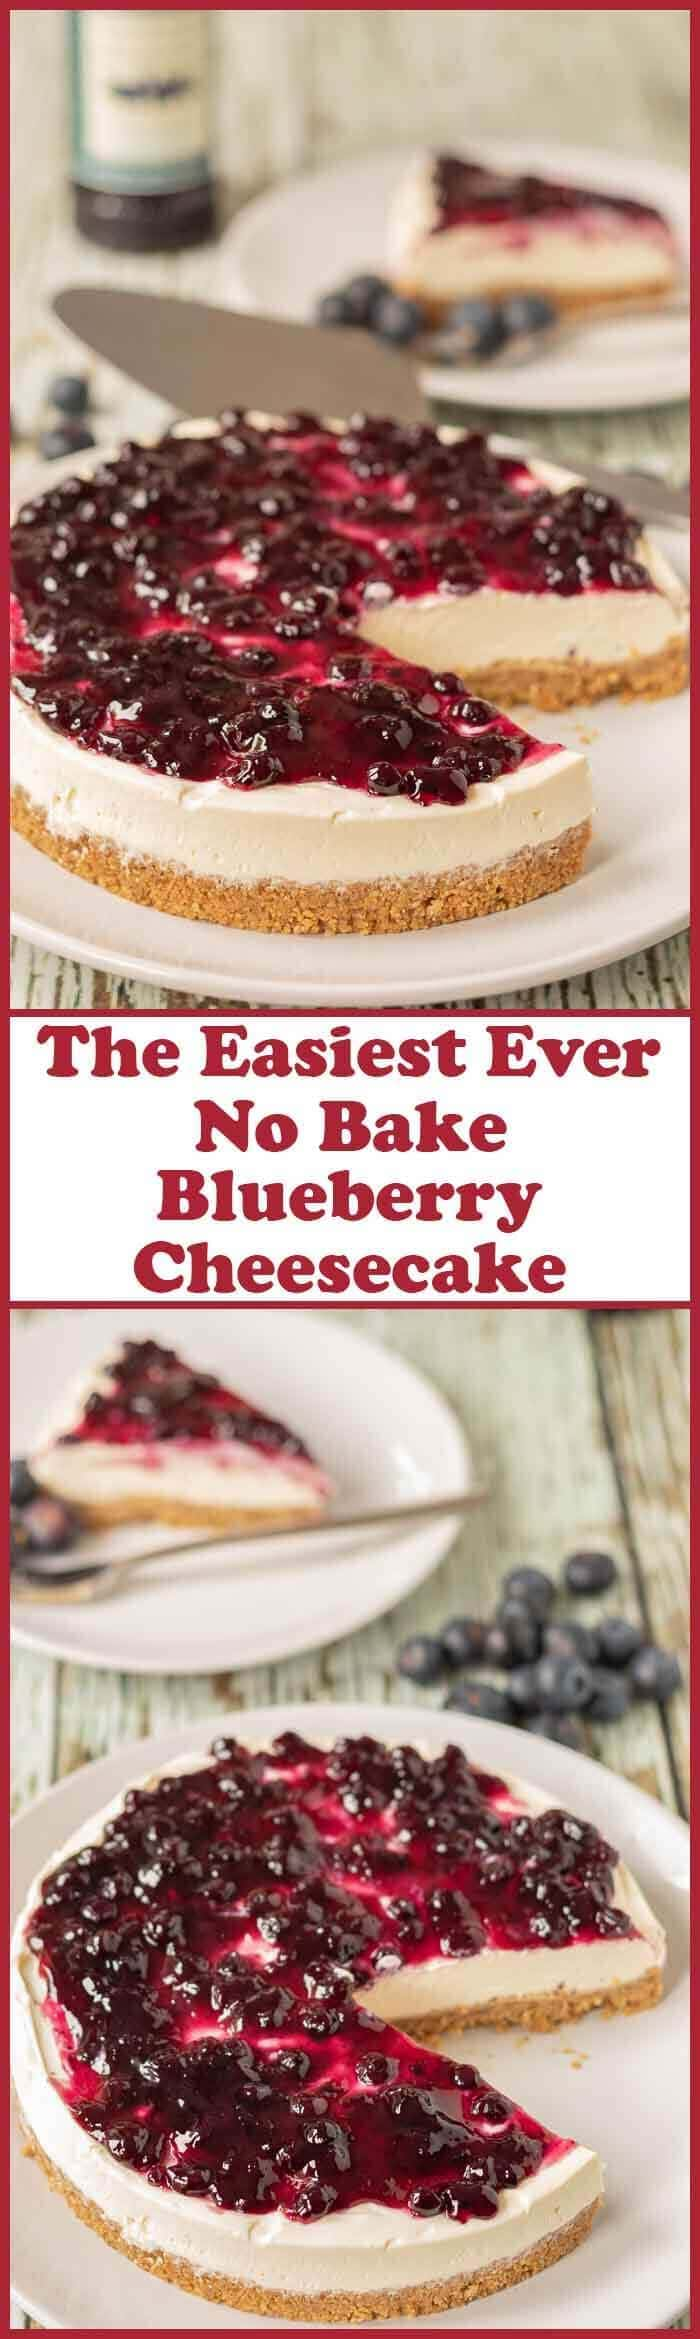 The easiest ever no bake blueberry cheesecake is the only blueberry cheesecake you will ever need. This is as quick and easy as cheesecake recipes get. No matter what the season is this cheesecake is perfect for all occasions!